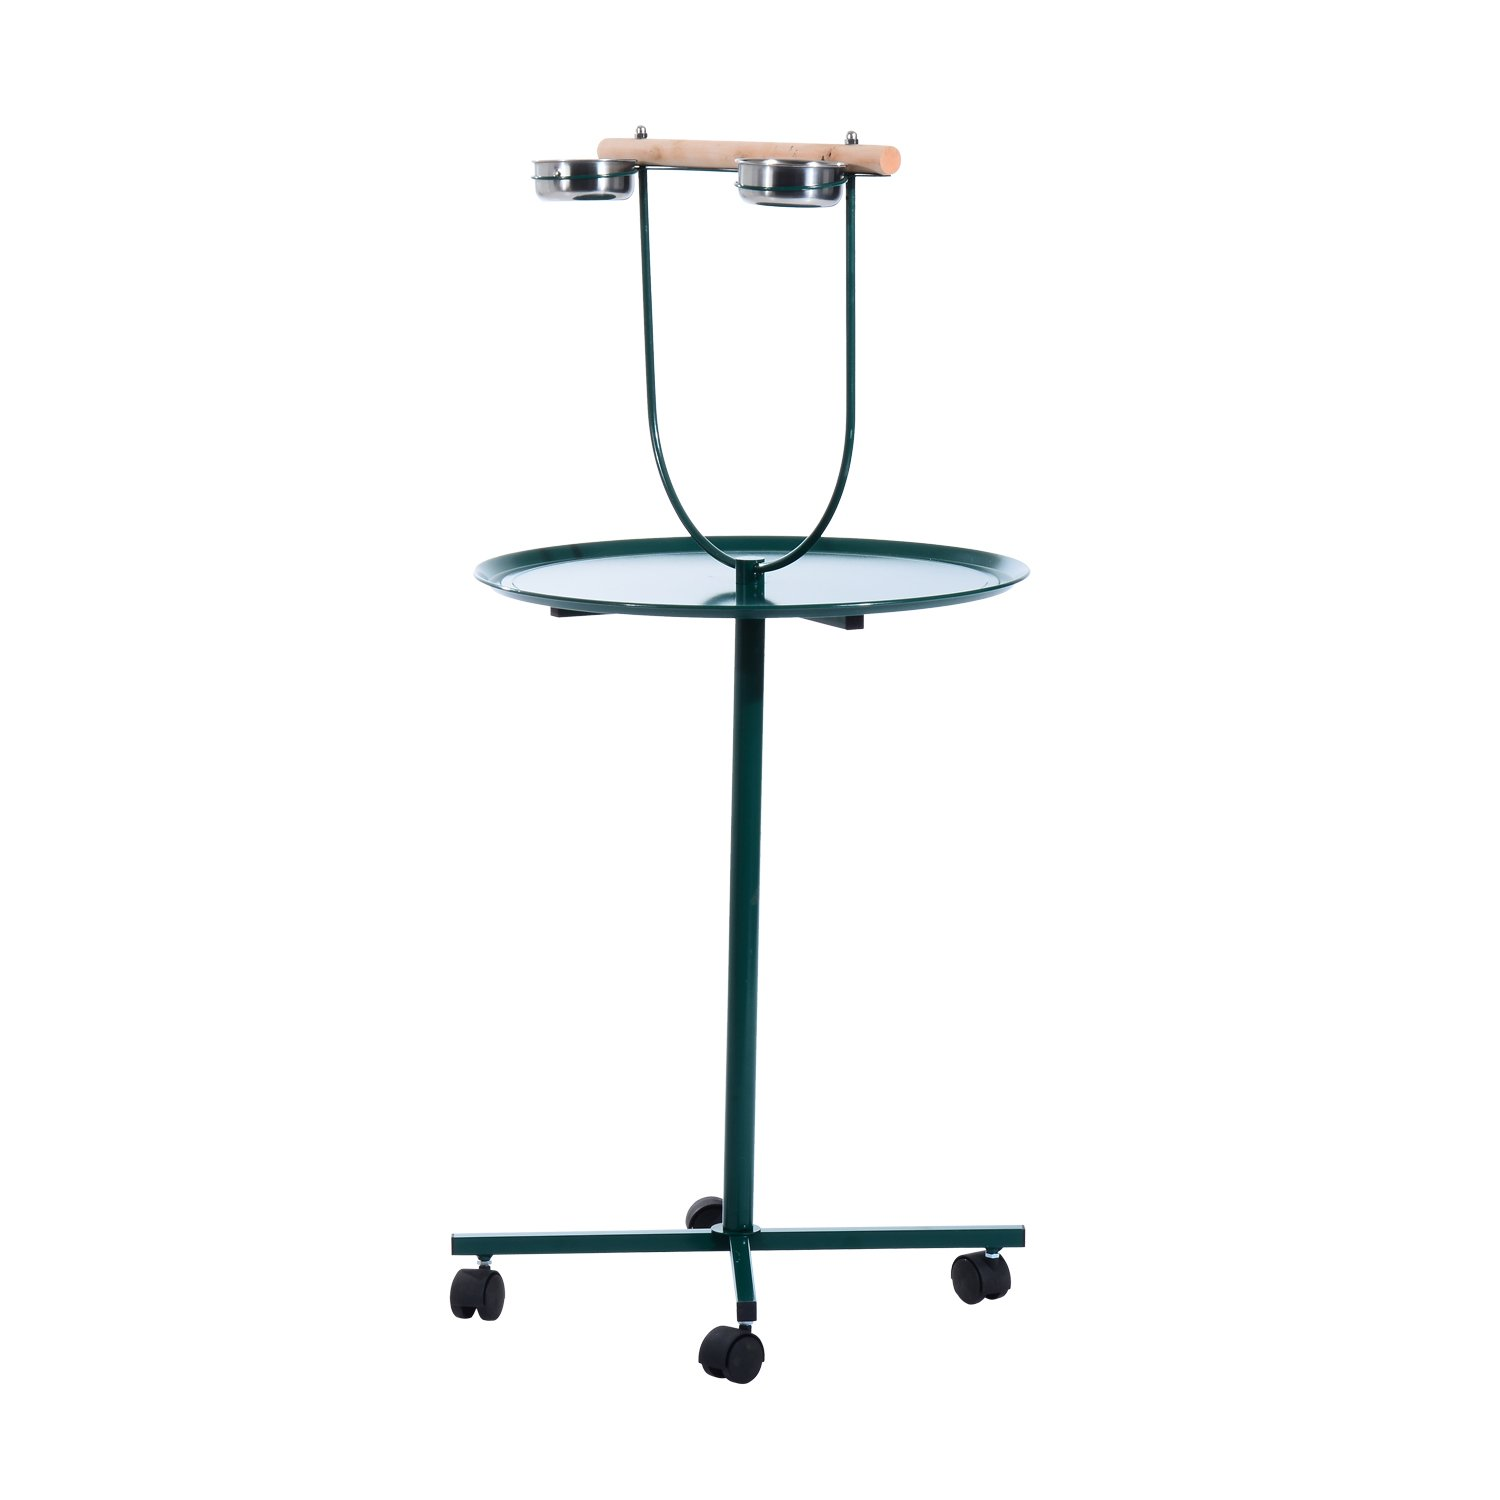 PawHut Bird Play Stand w/Wheels - Green Aosom Direct D10-005